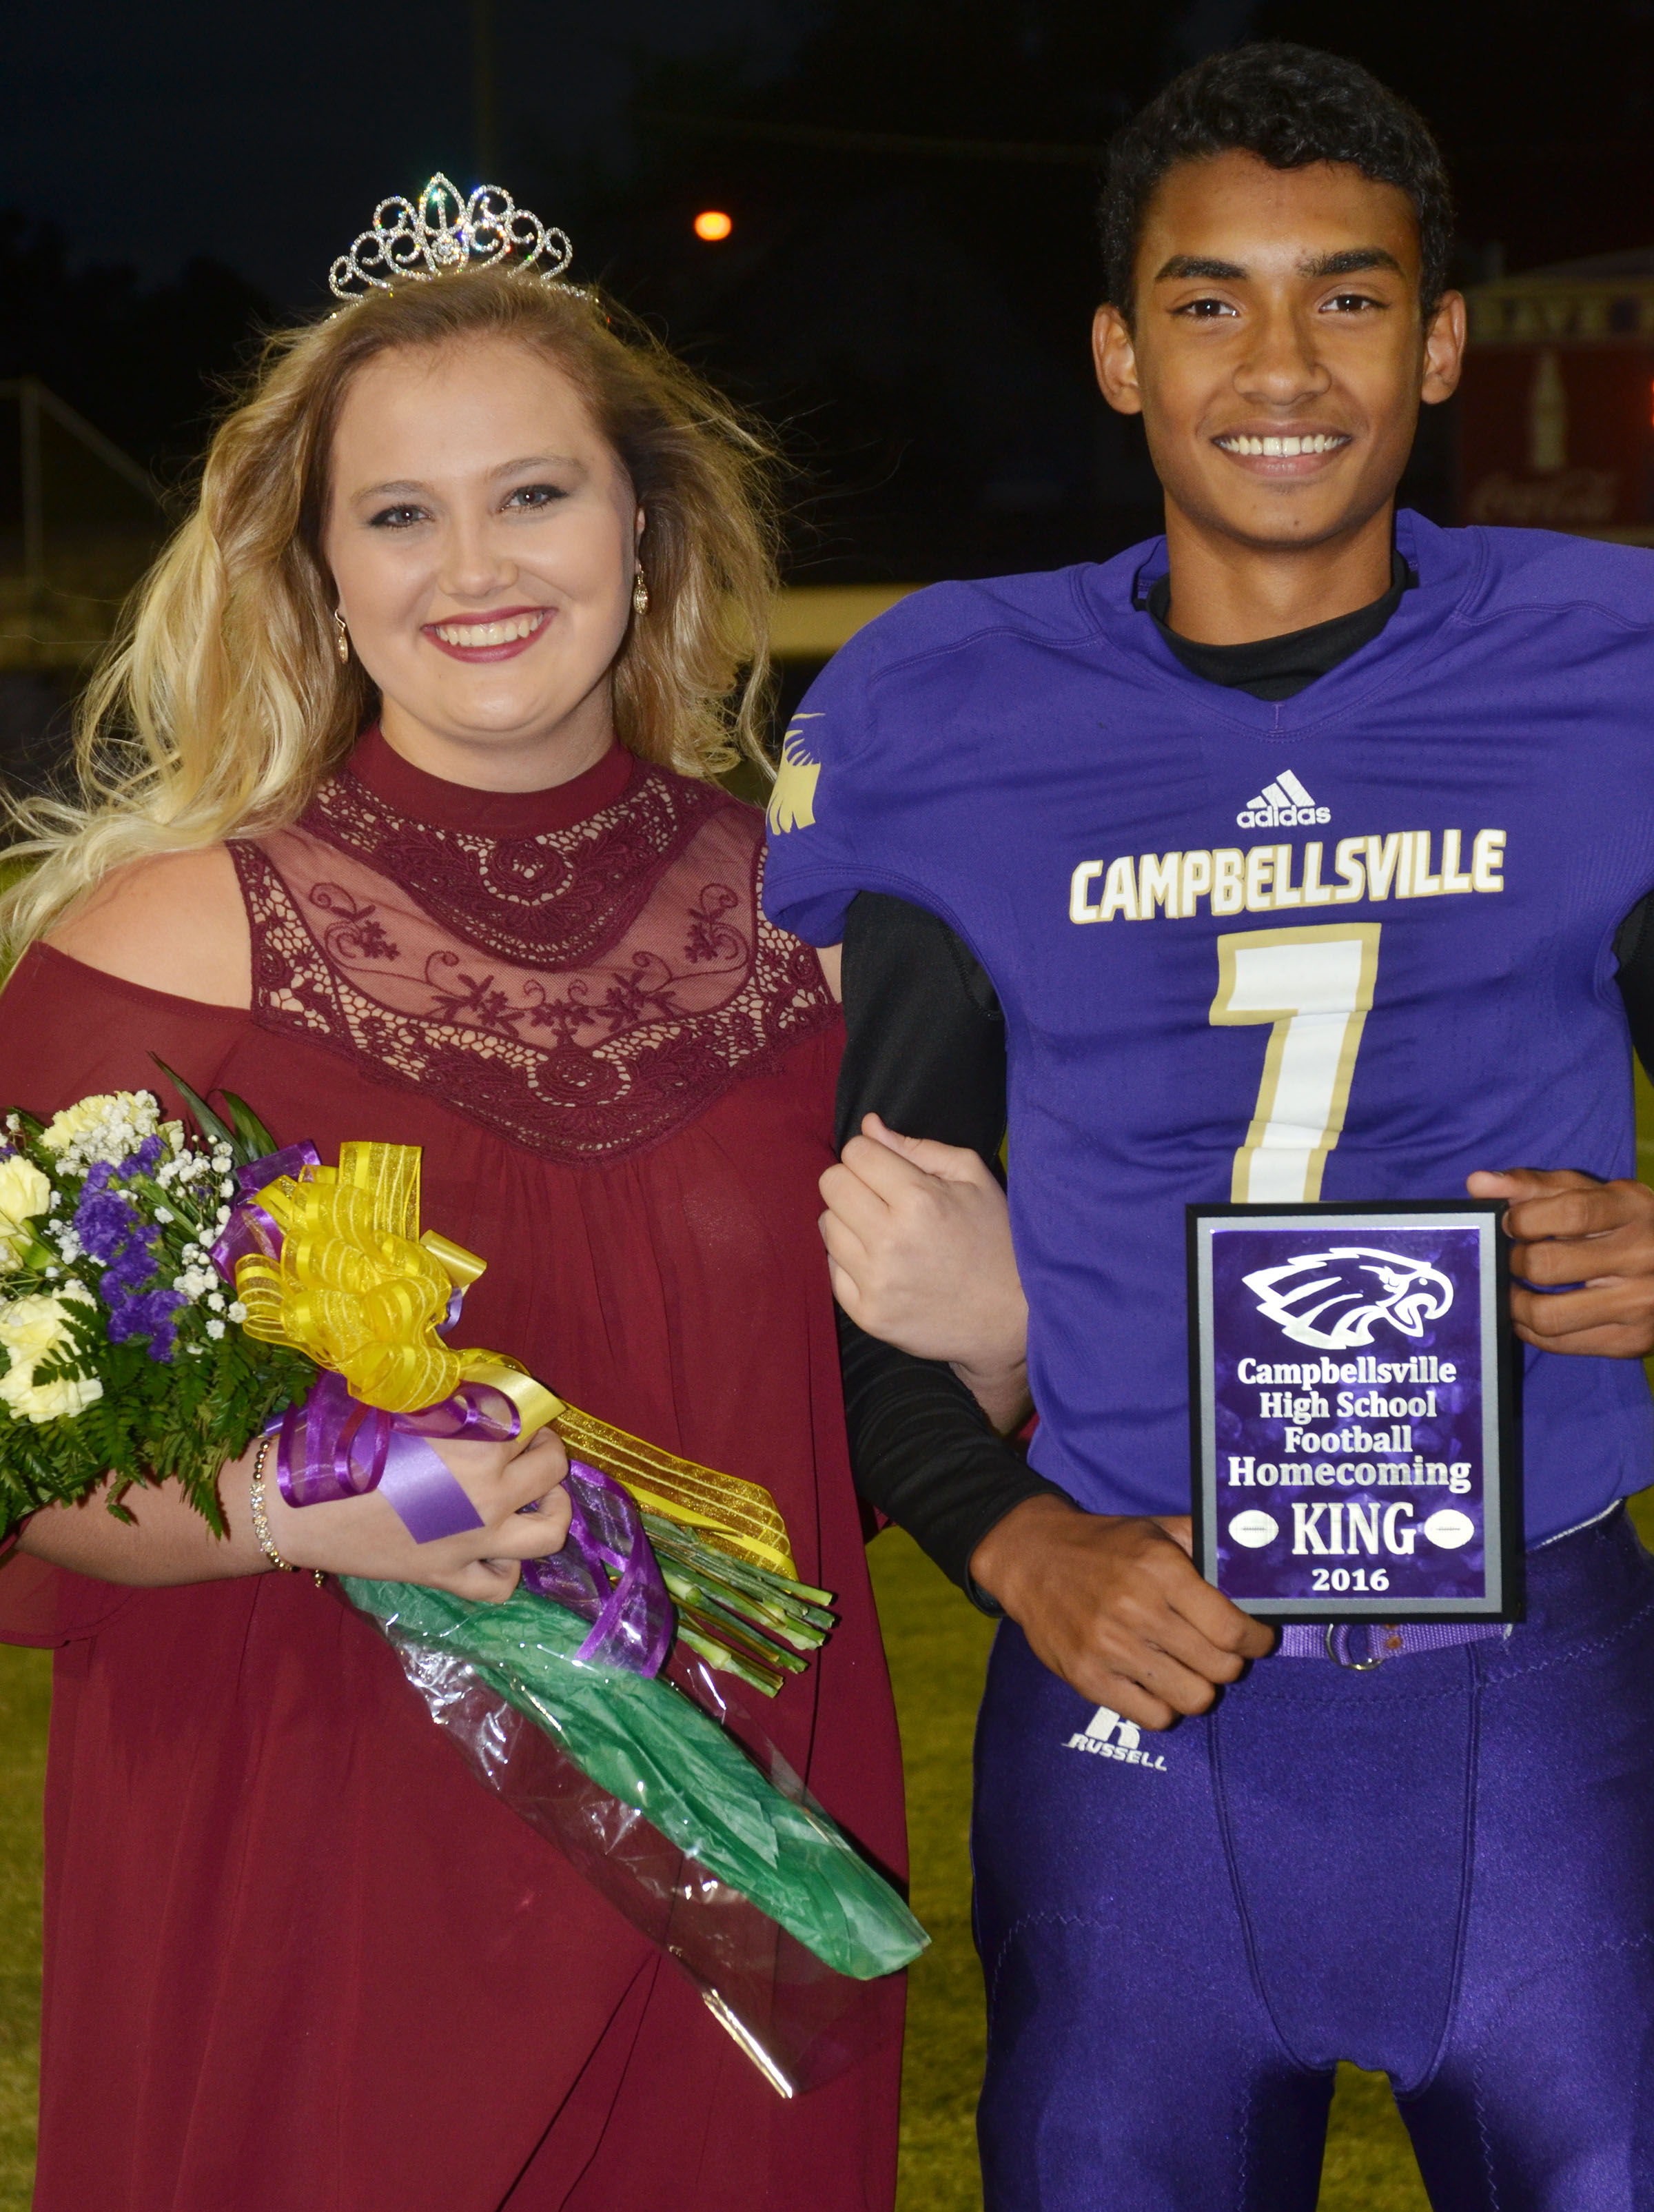 CHS seniors Brenna Wethington and Daniel Silva are this year's football homecoming king and queen.